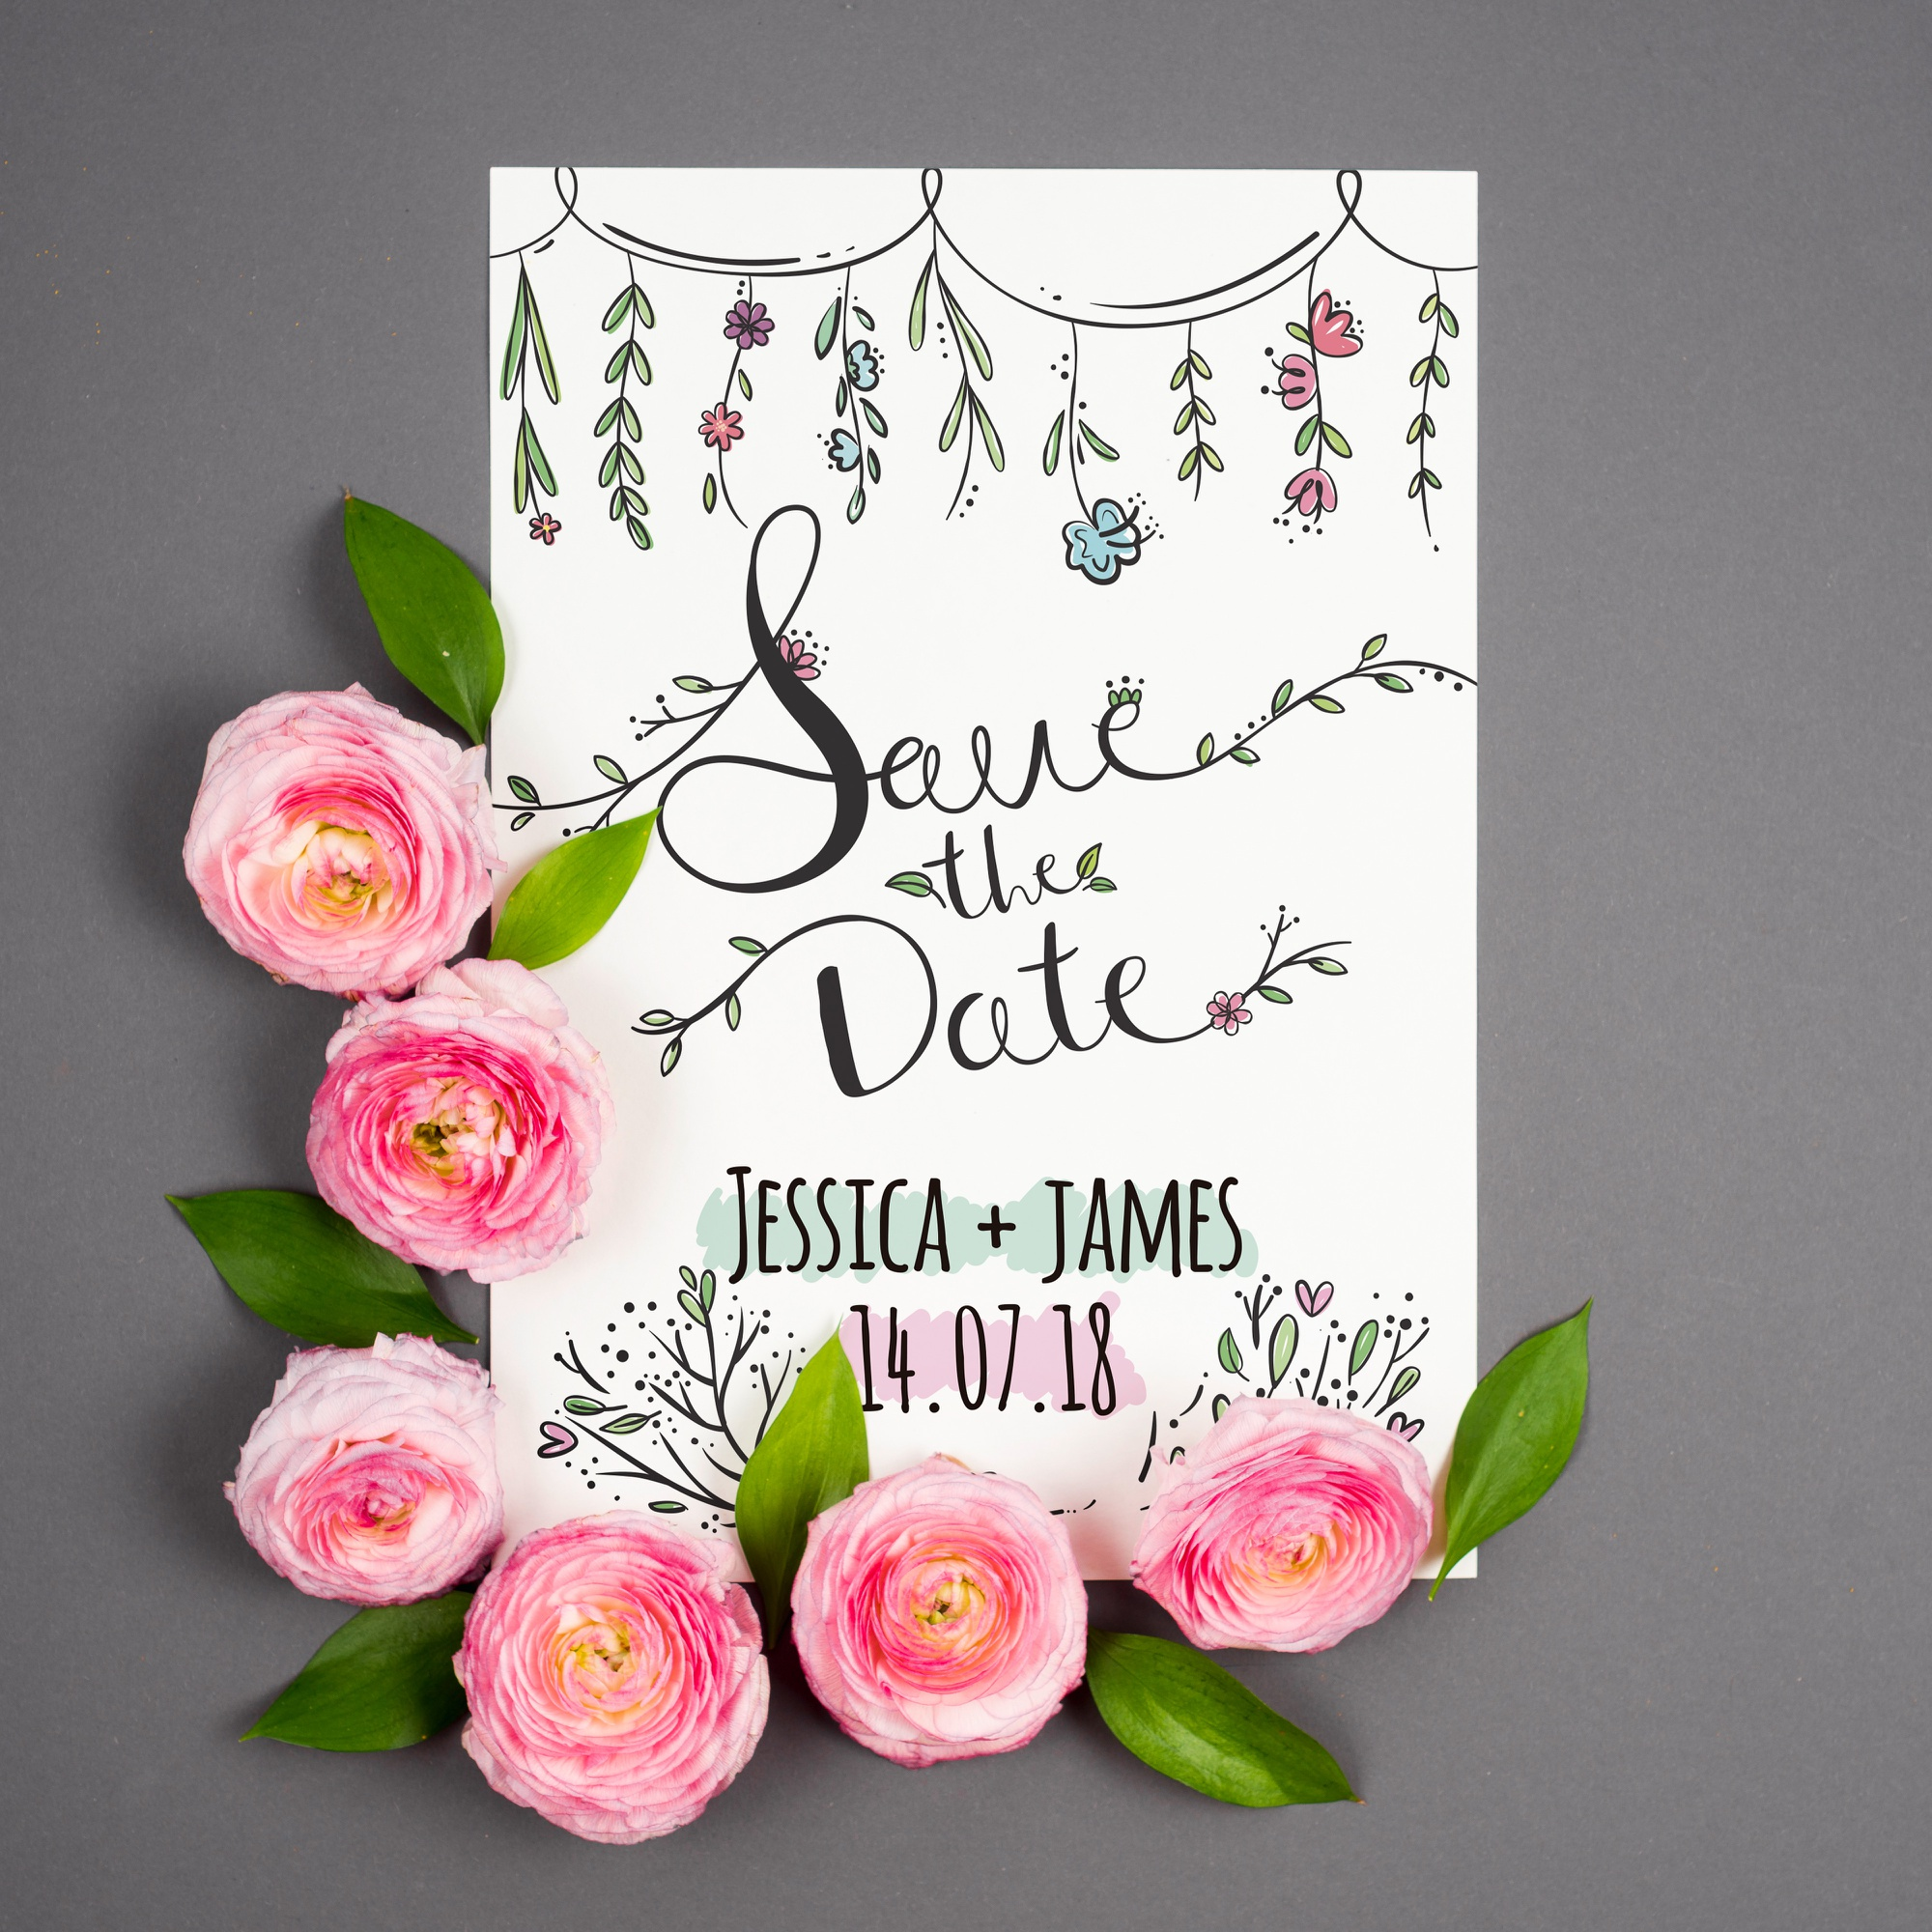 Beautiful card mockup with roses